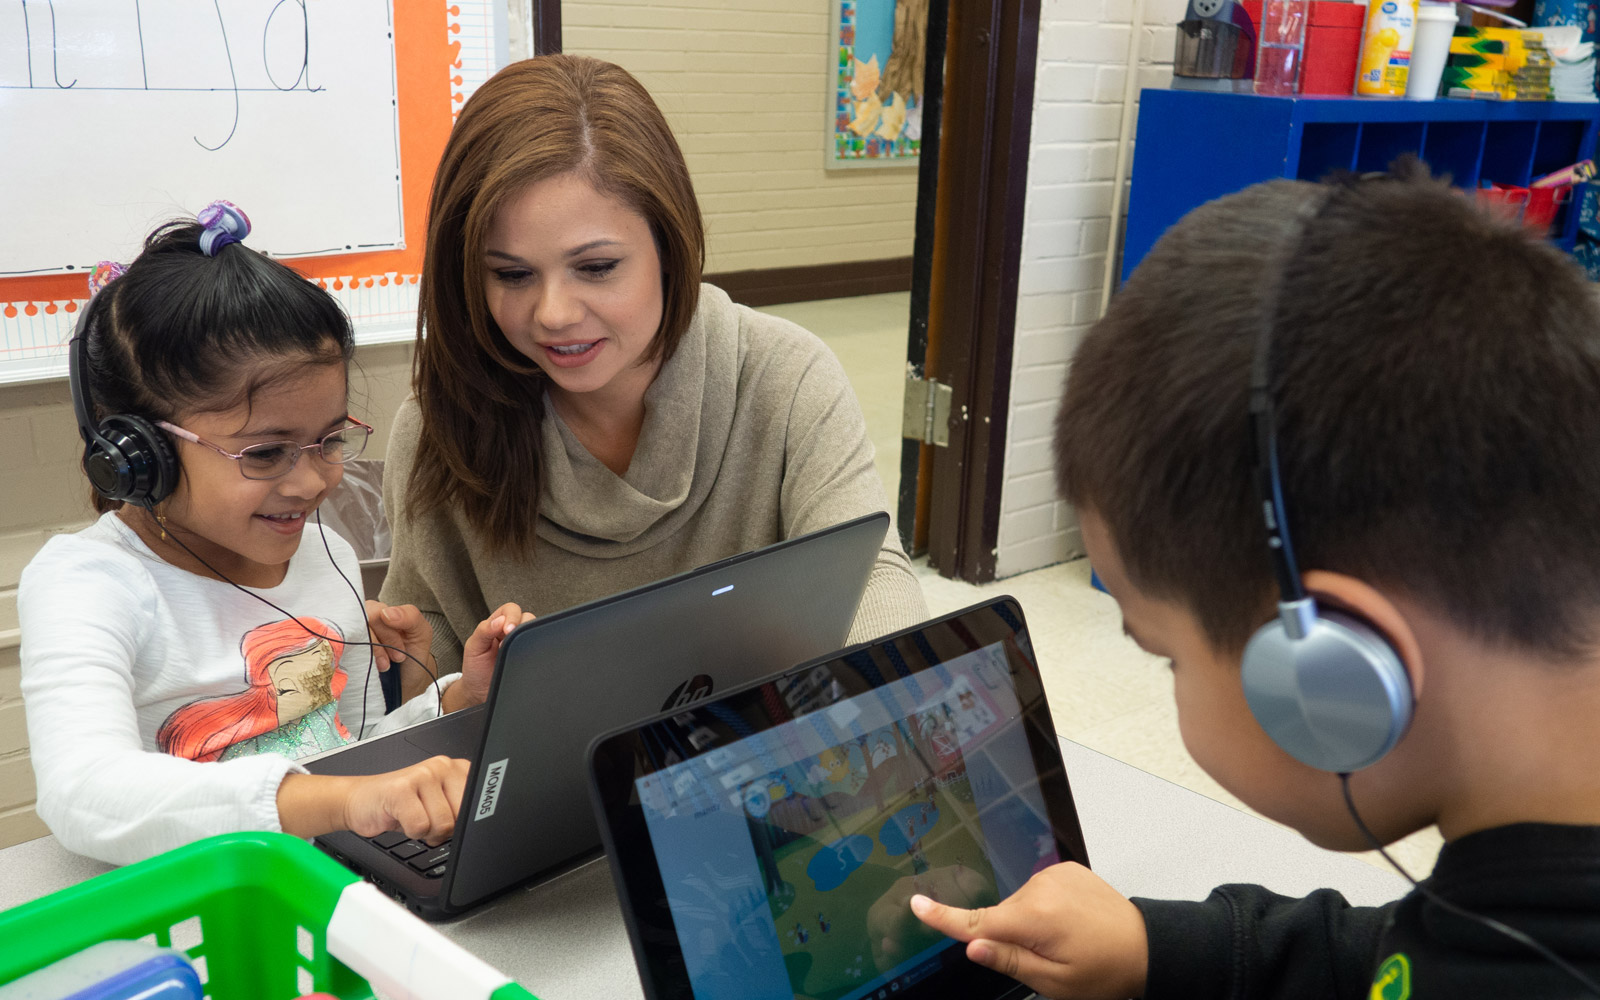 young female teacher working with elementary school girl and school boy wearing headphones and pointing at laptops